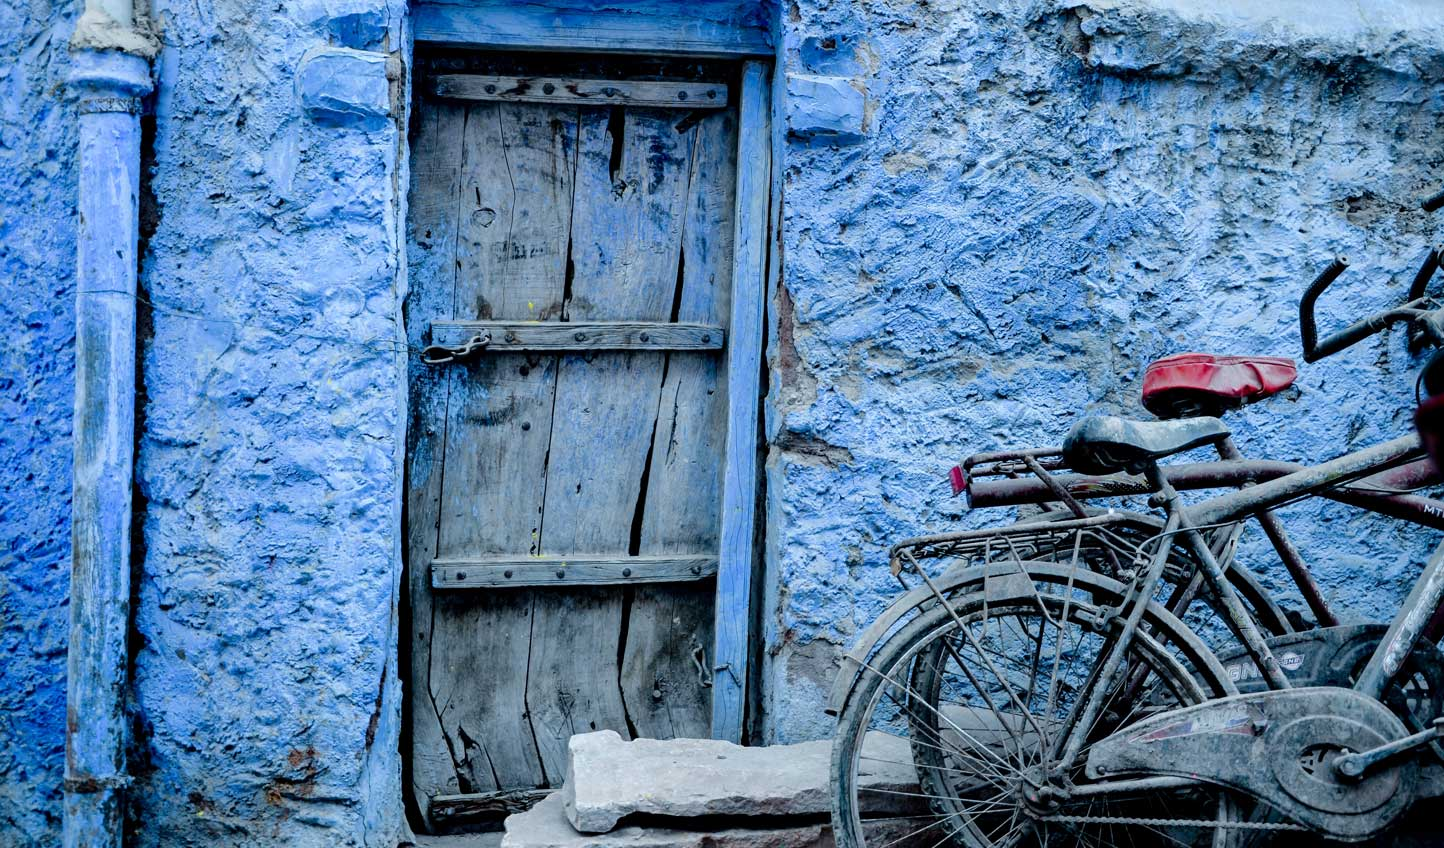 Stroll the blue-hued streets and see life through the eyes of a local